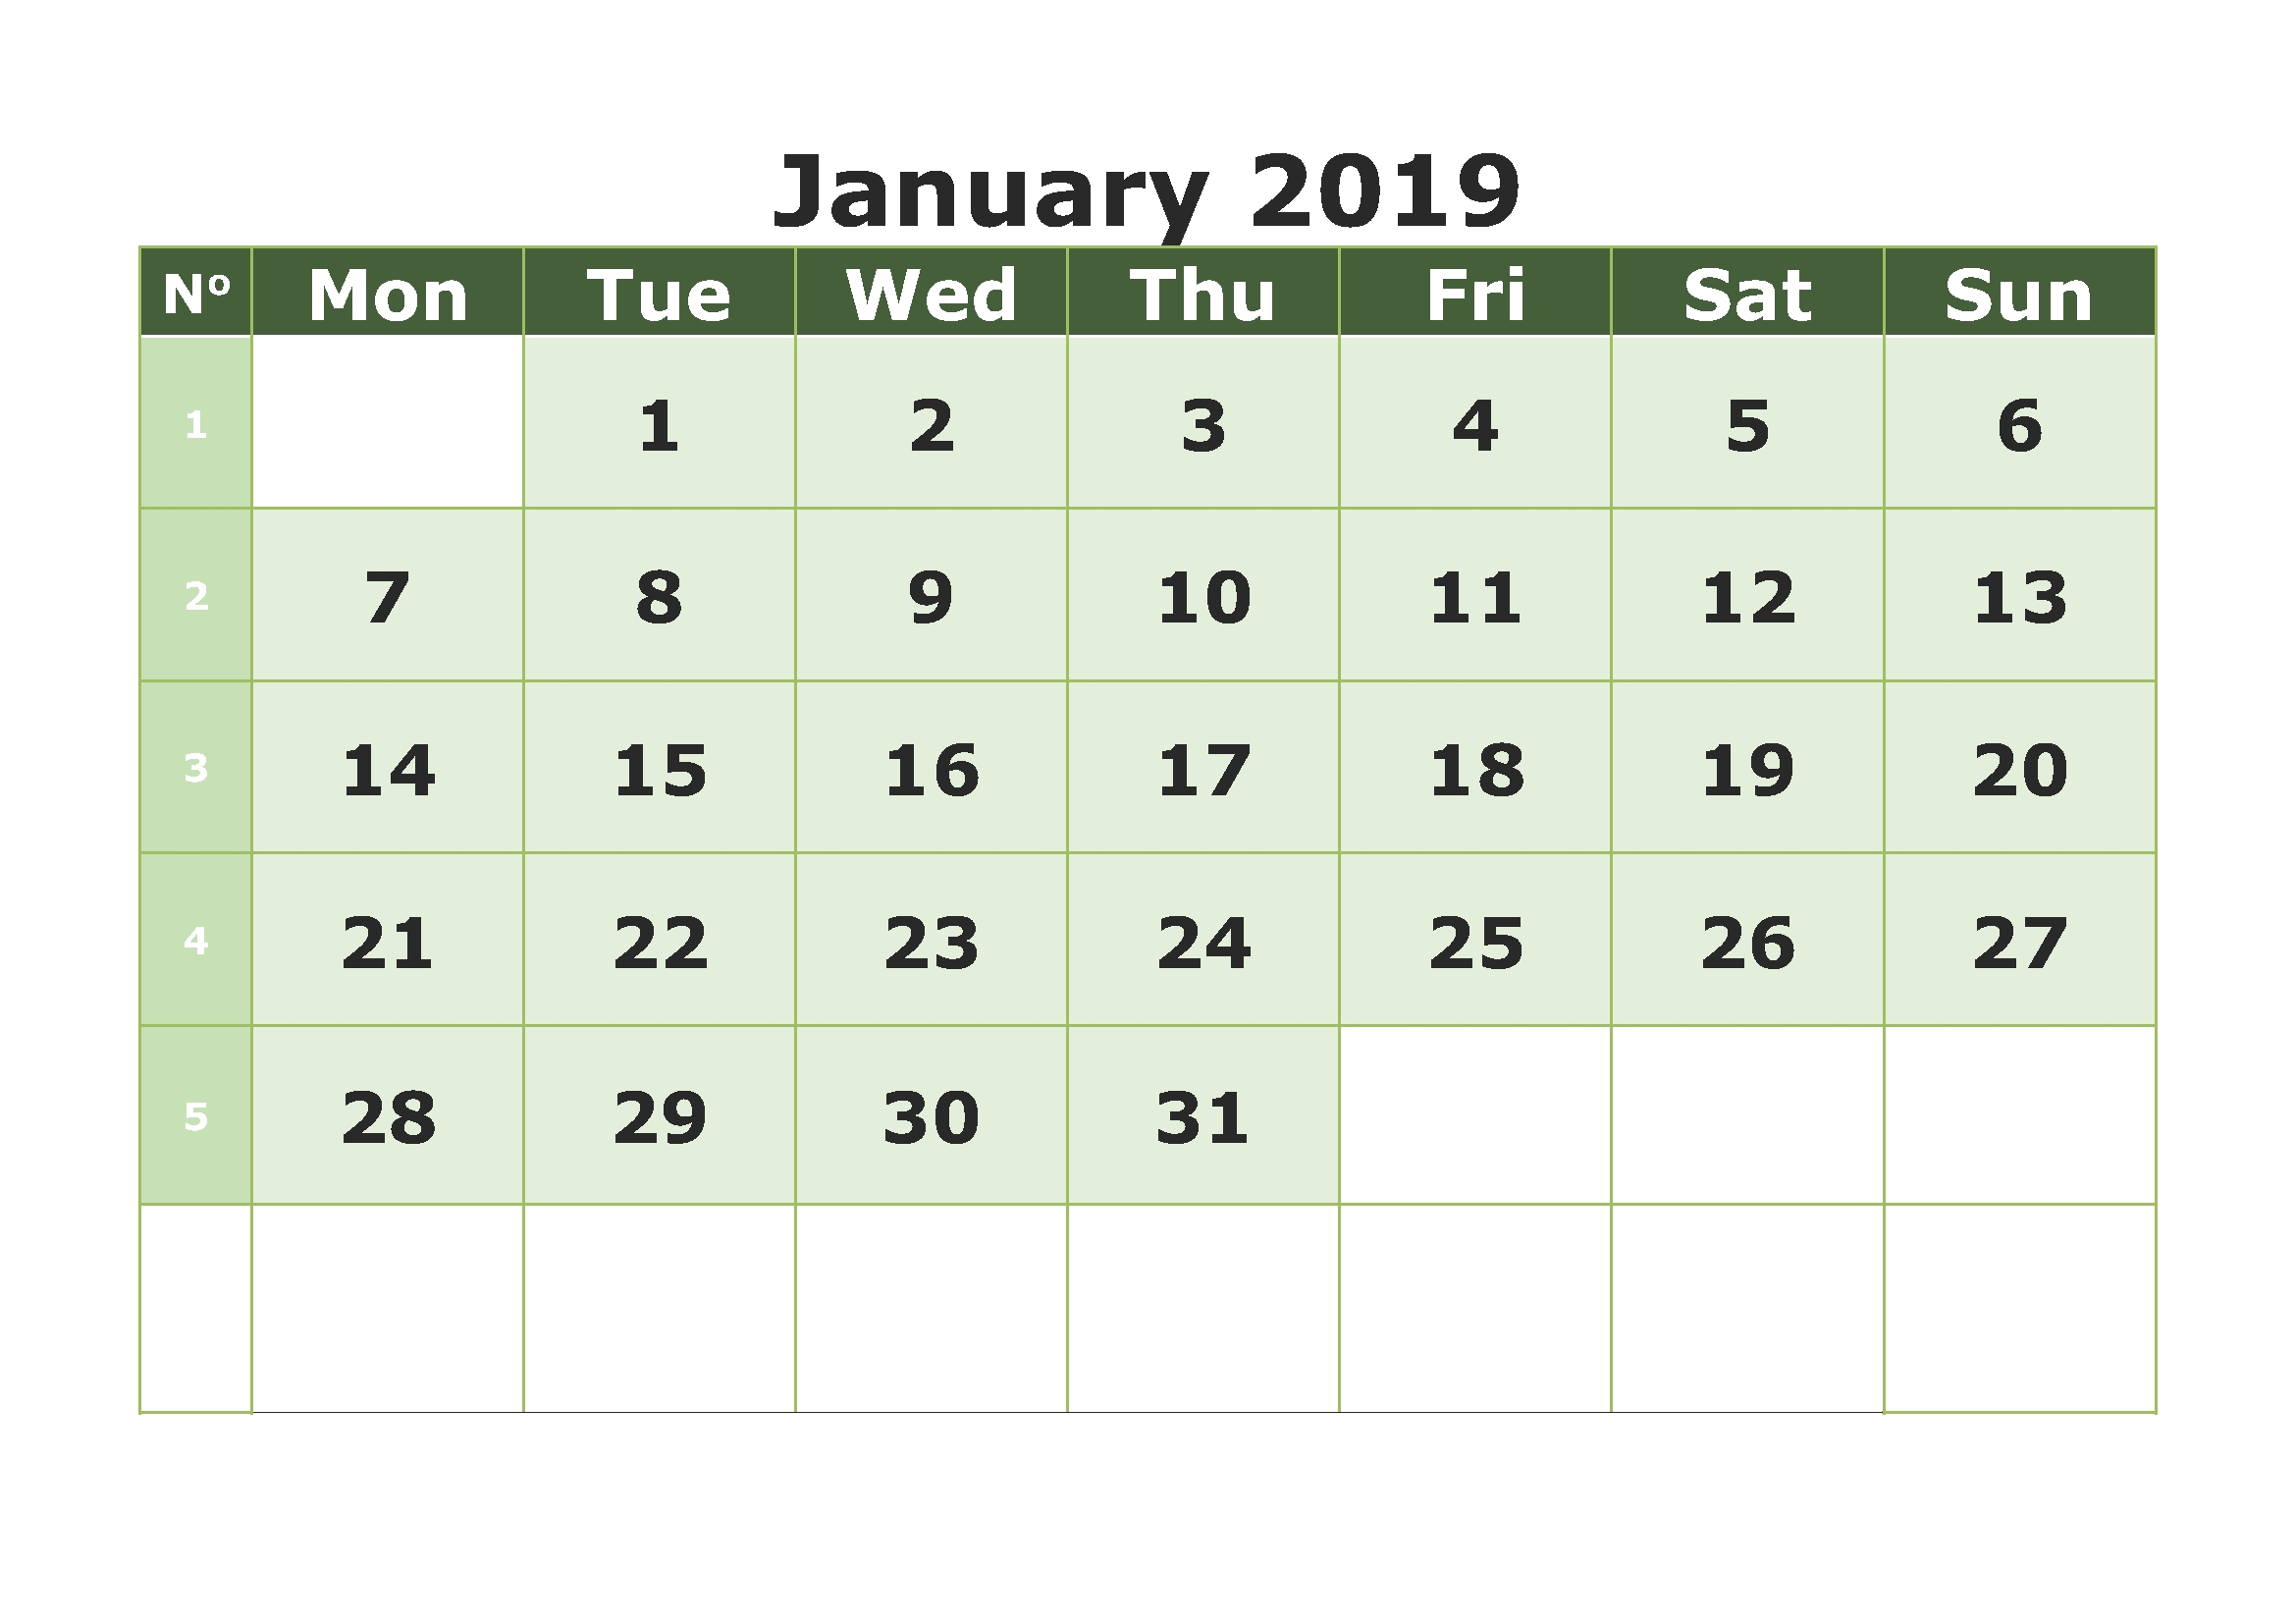 january 2019 calendar download january calendar january 2019::January 2019 Monthly Calendar